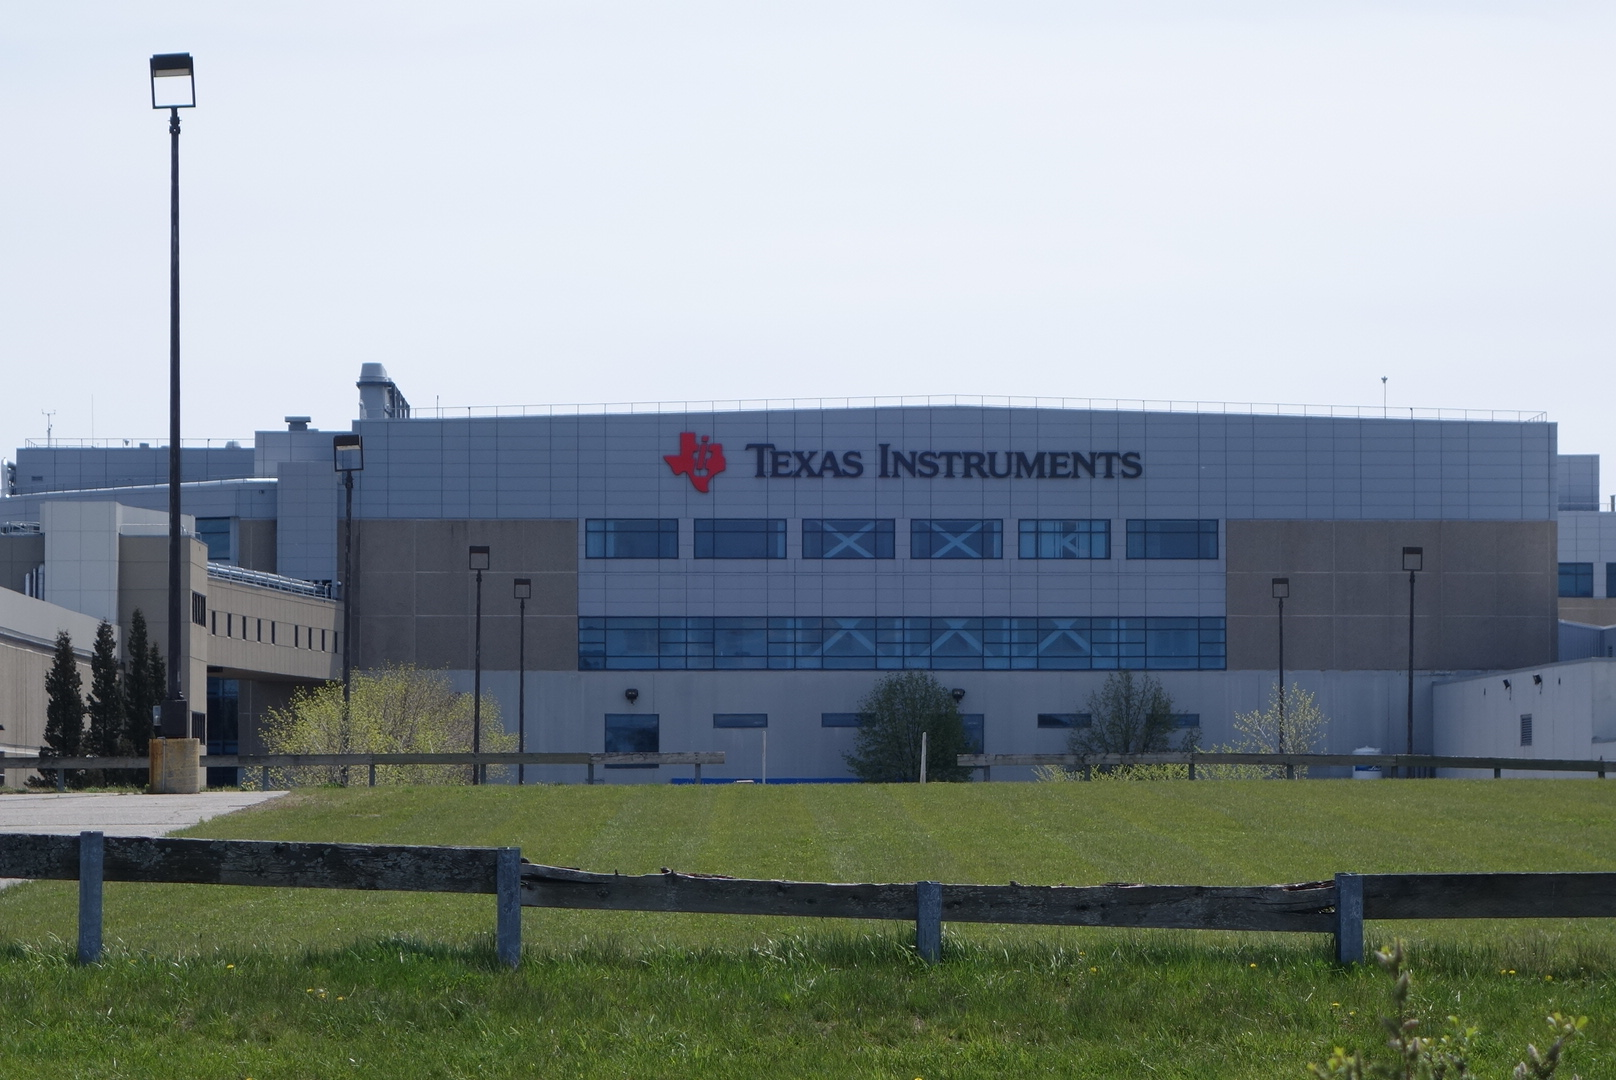 Texas Instruments' plant in Portland, Maine.